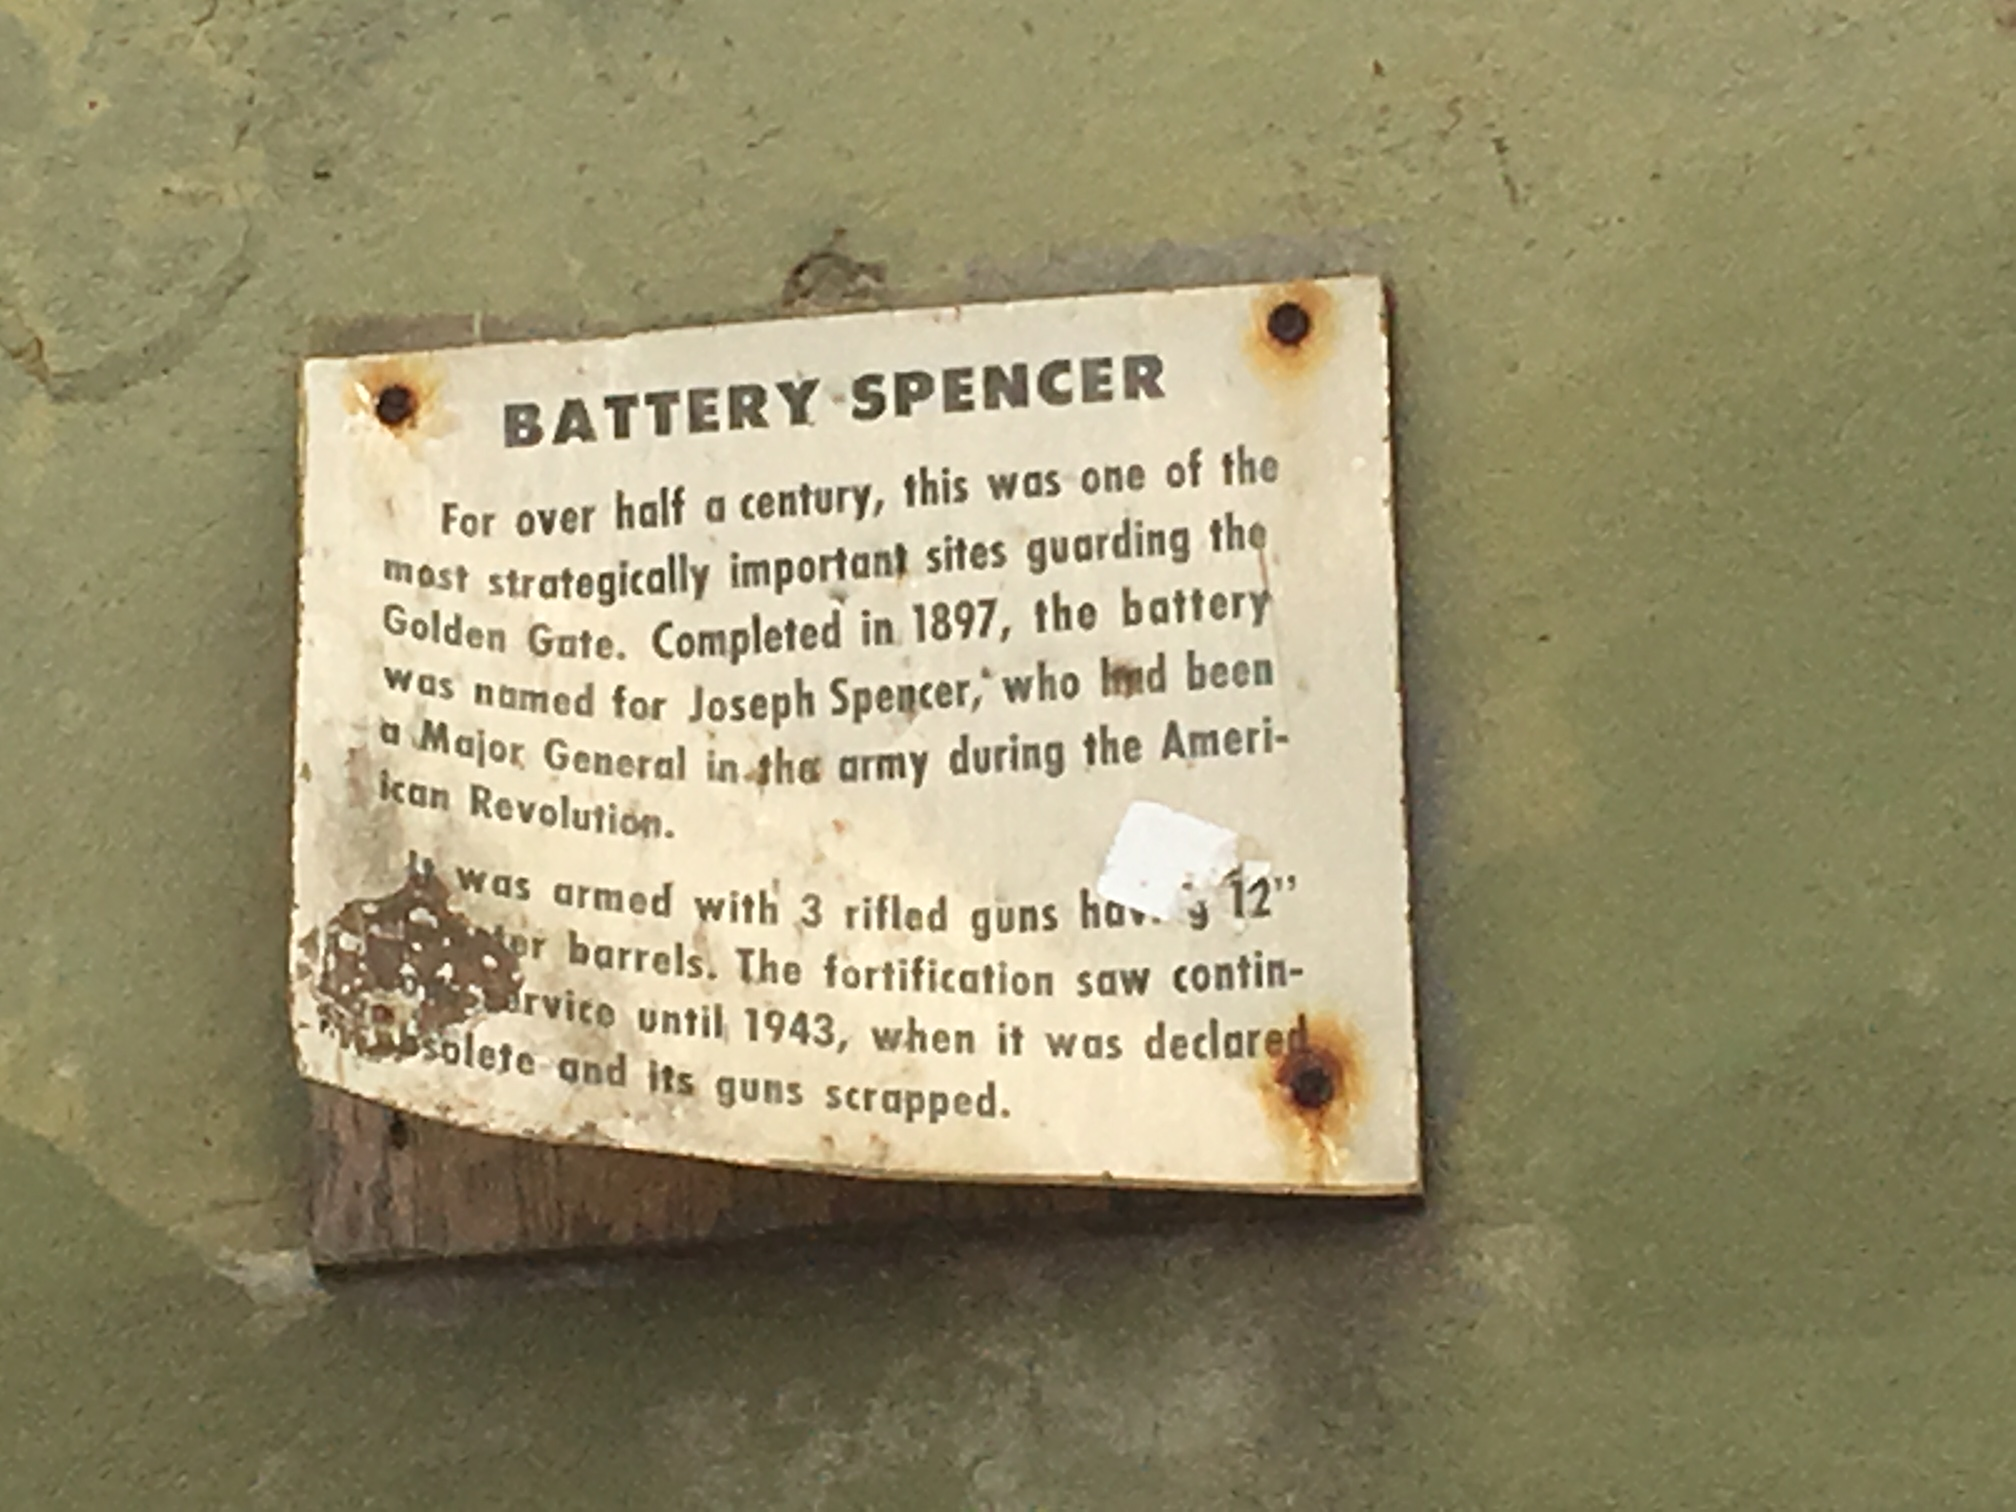 A closer view of one of the signs describing Battery Spencer.